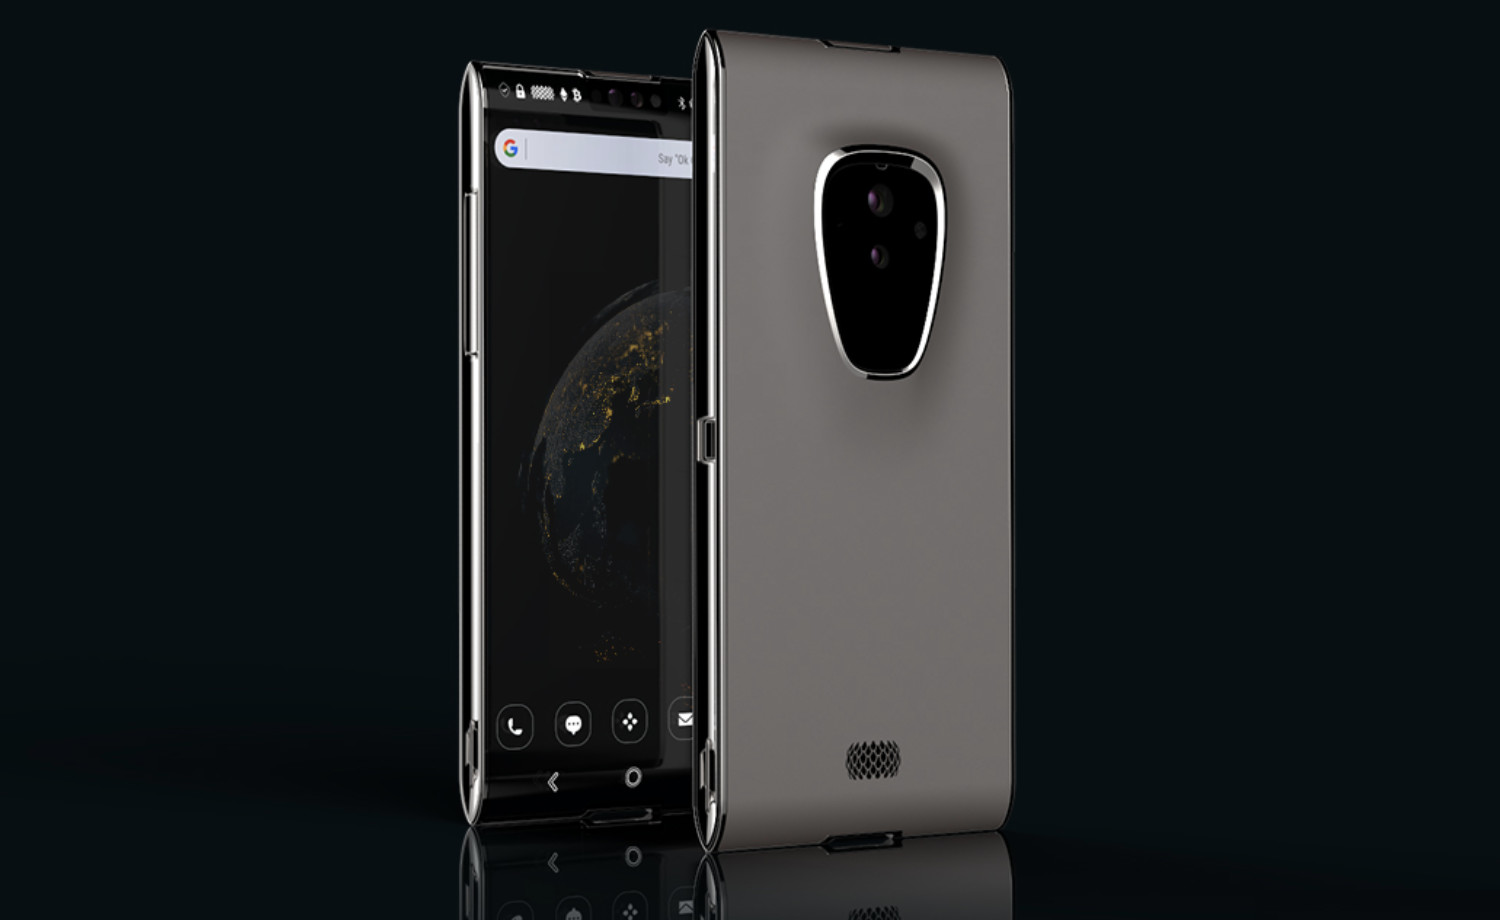 Sirin Finney, Worlds first Blockchain smartphone launched